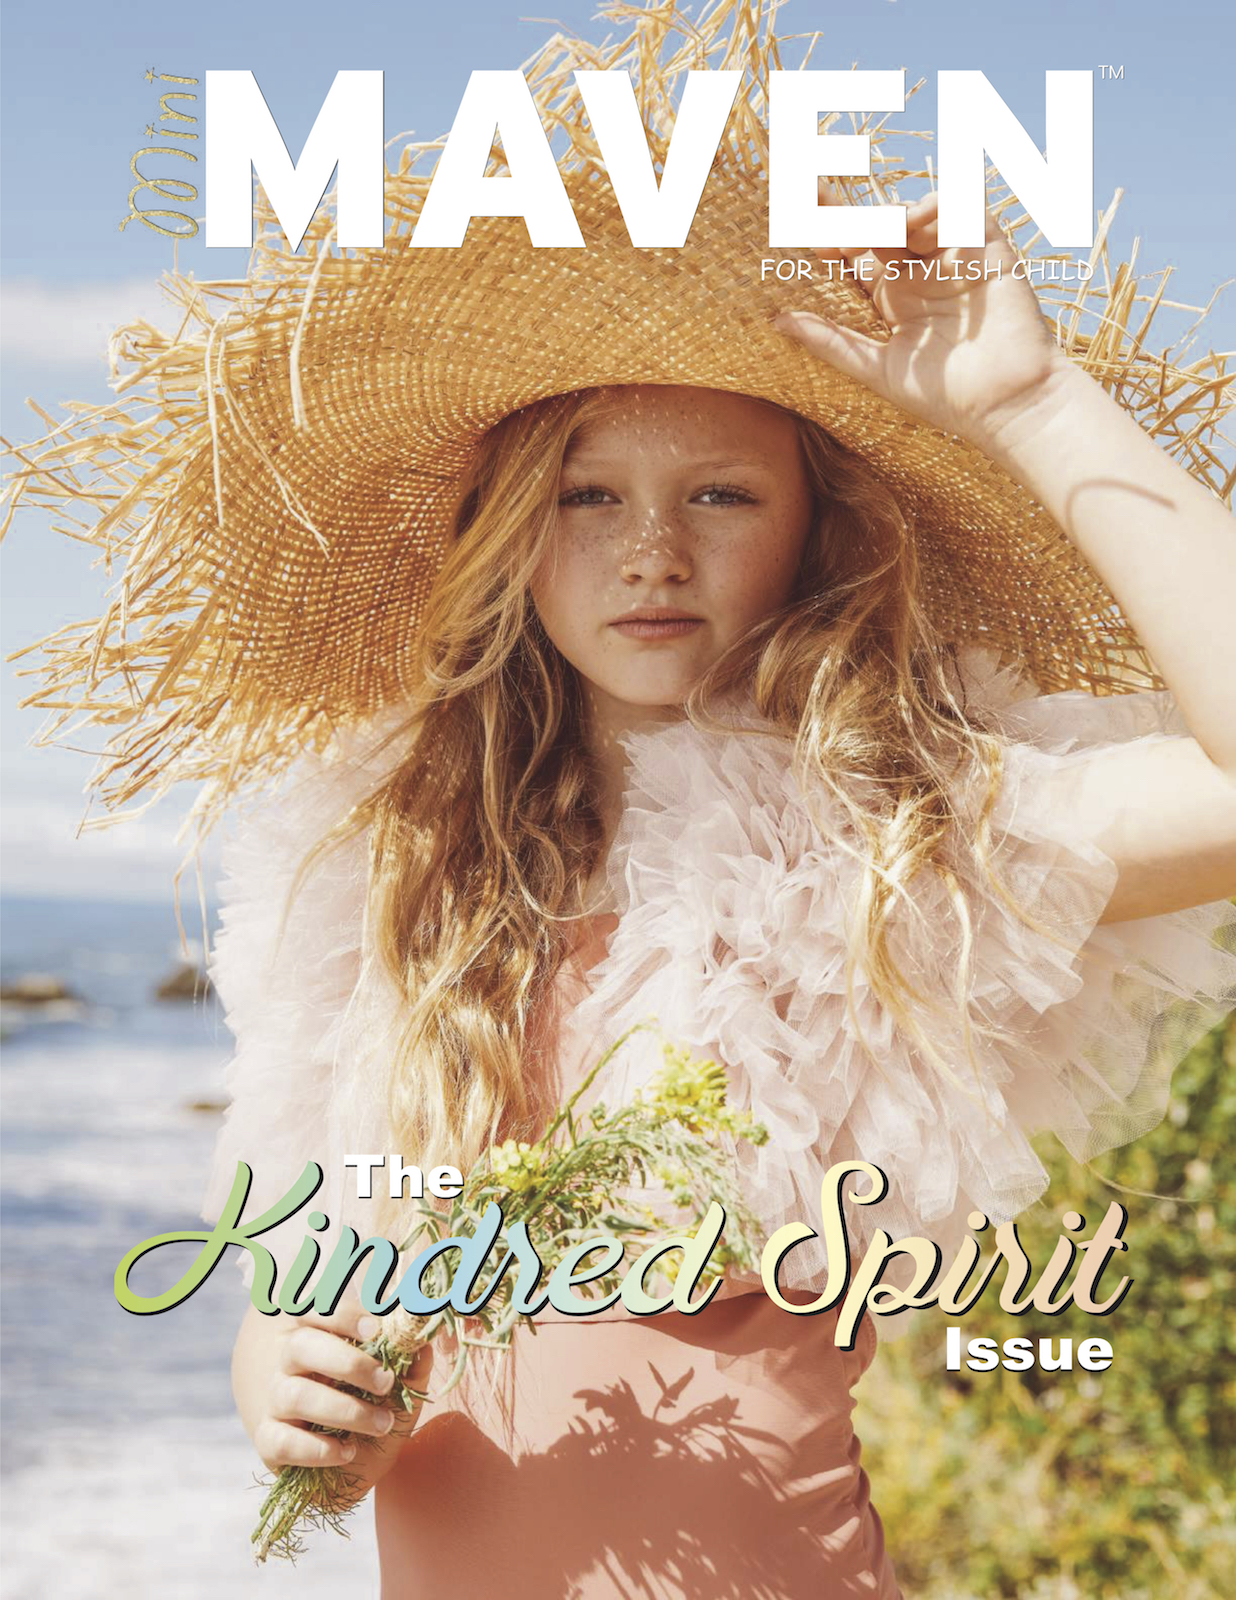 MiniMavenSPR20Coverweb